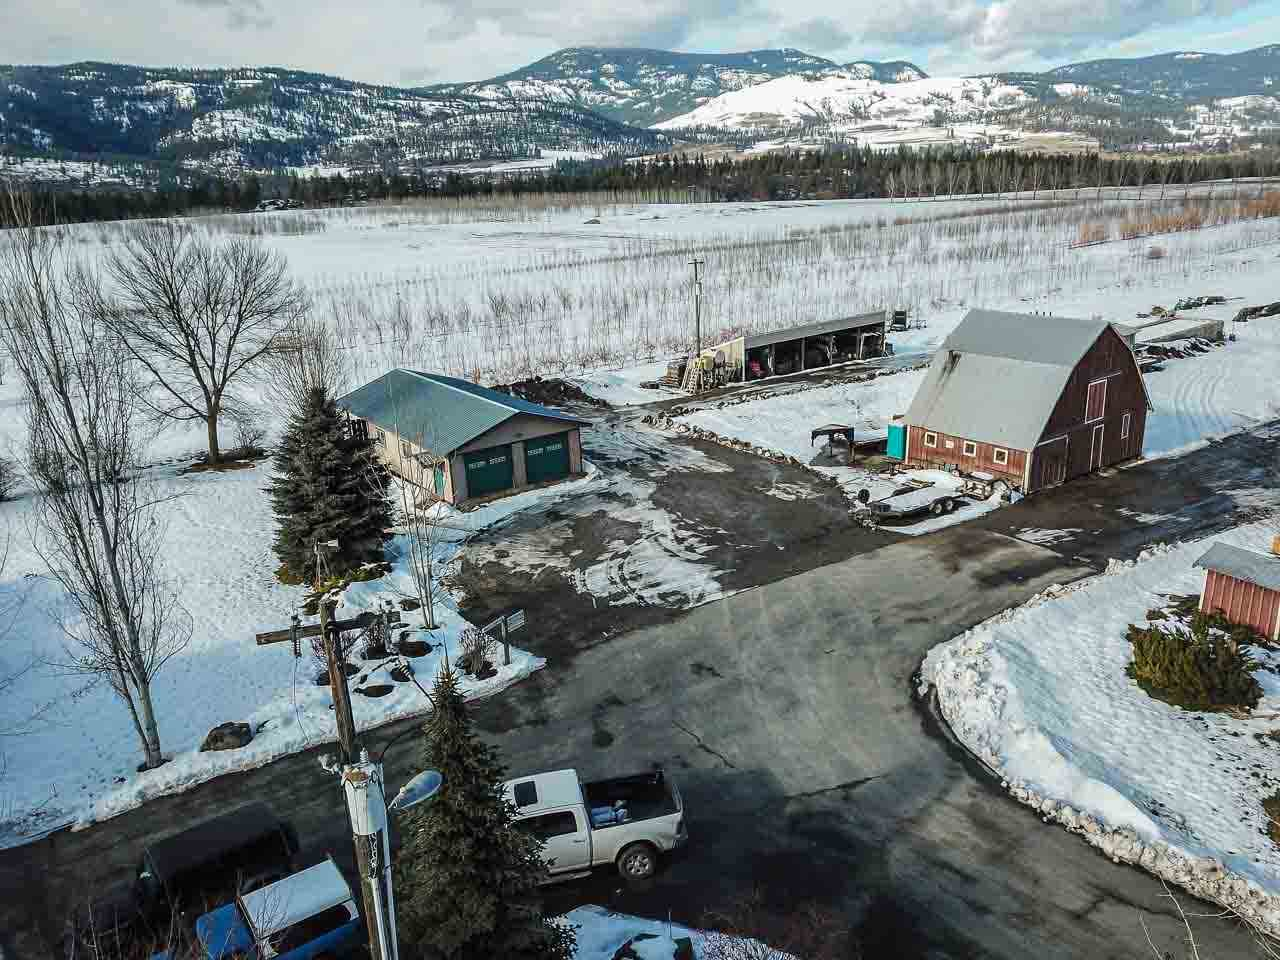 Commercial for Sale at 2198 WA-25 Hwy 2198 WA-25 Hwy Kettle Falls, Washington 99141 United States